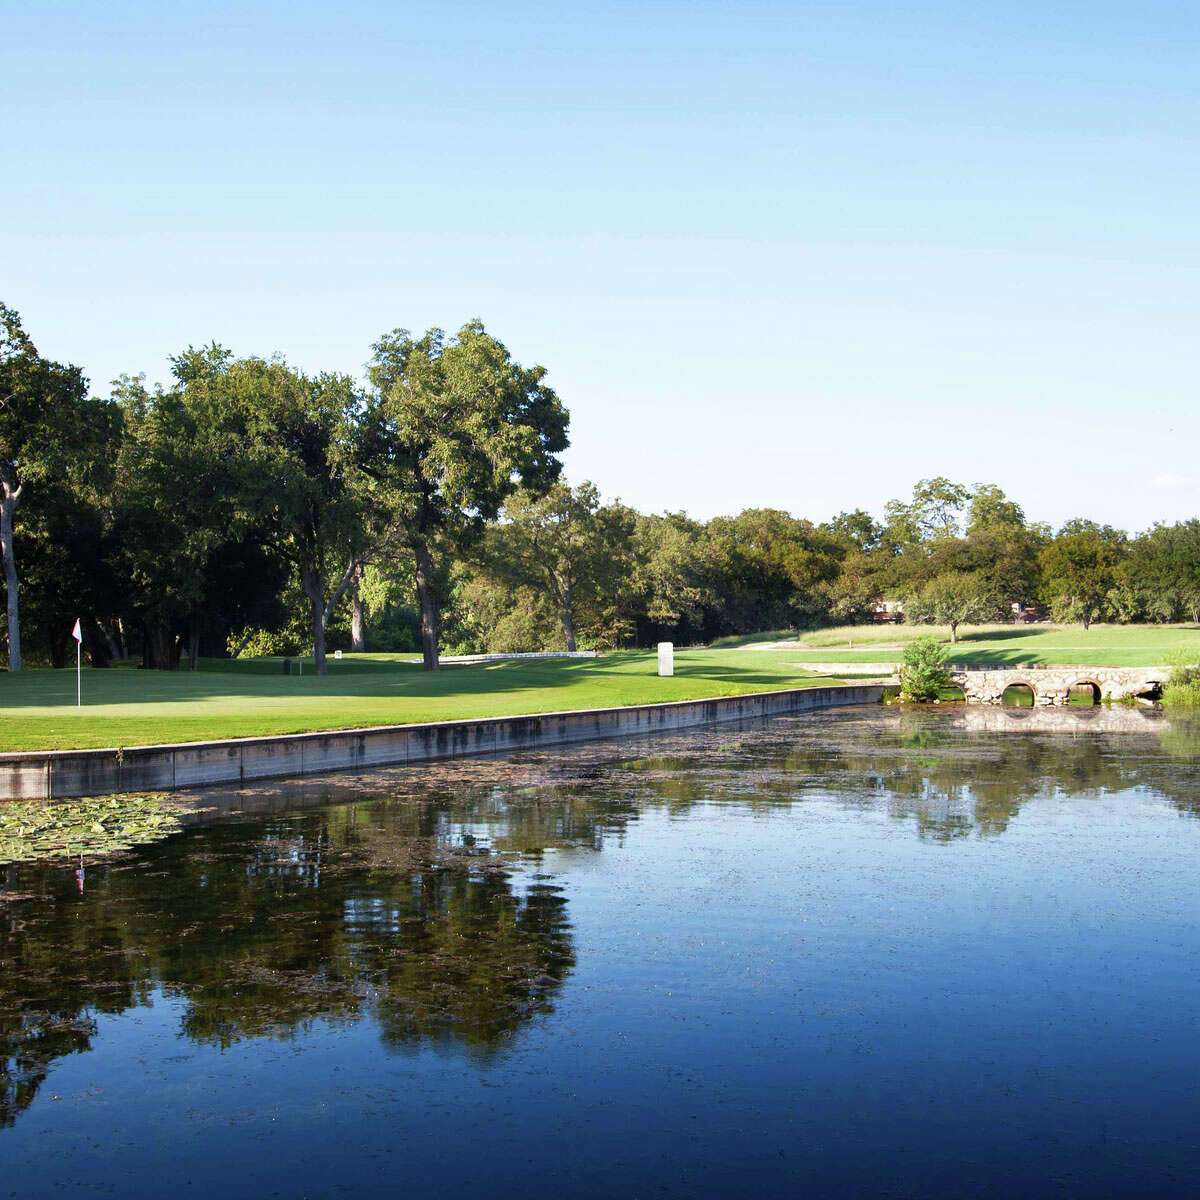 The Comal Springs come into play on several holes, like here, on #2 green. CLICK HERE to learn more about our renovated course.